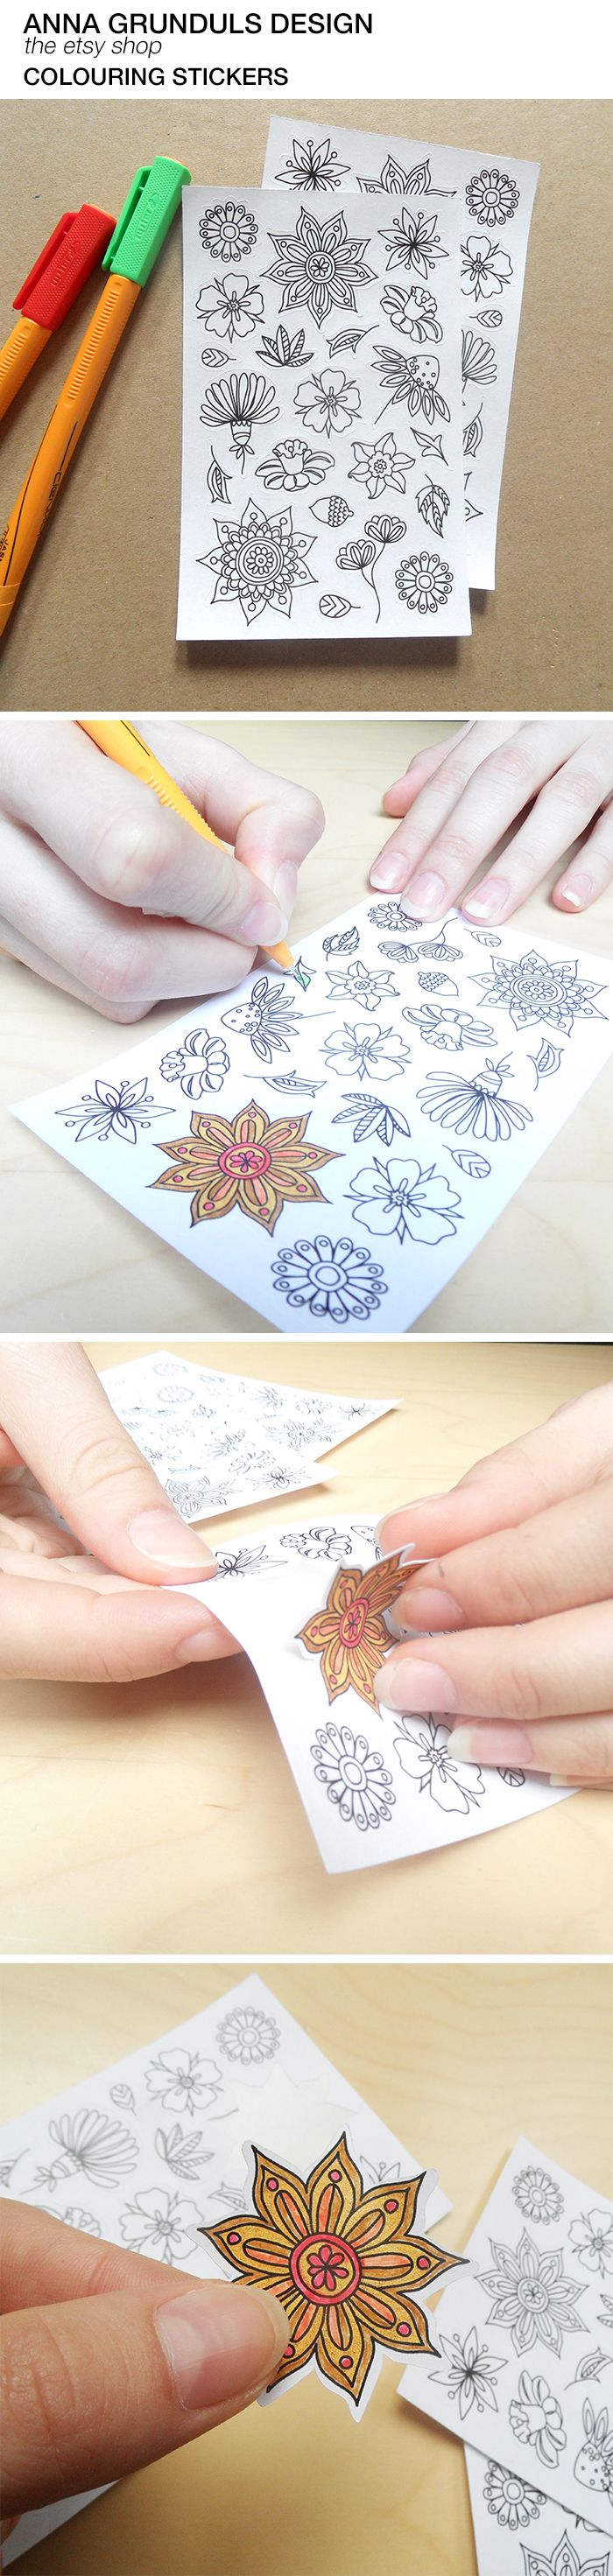 New colouring stickers available on annagrunduls.com! They can keep (not only) kids busy and you can decorate anything with them! These make some seriously awesome planner goodies!